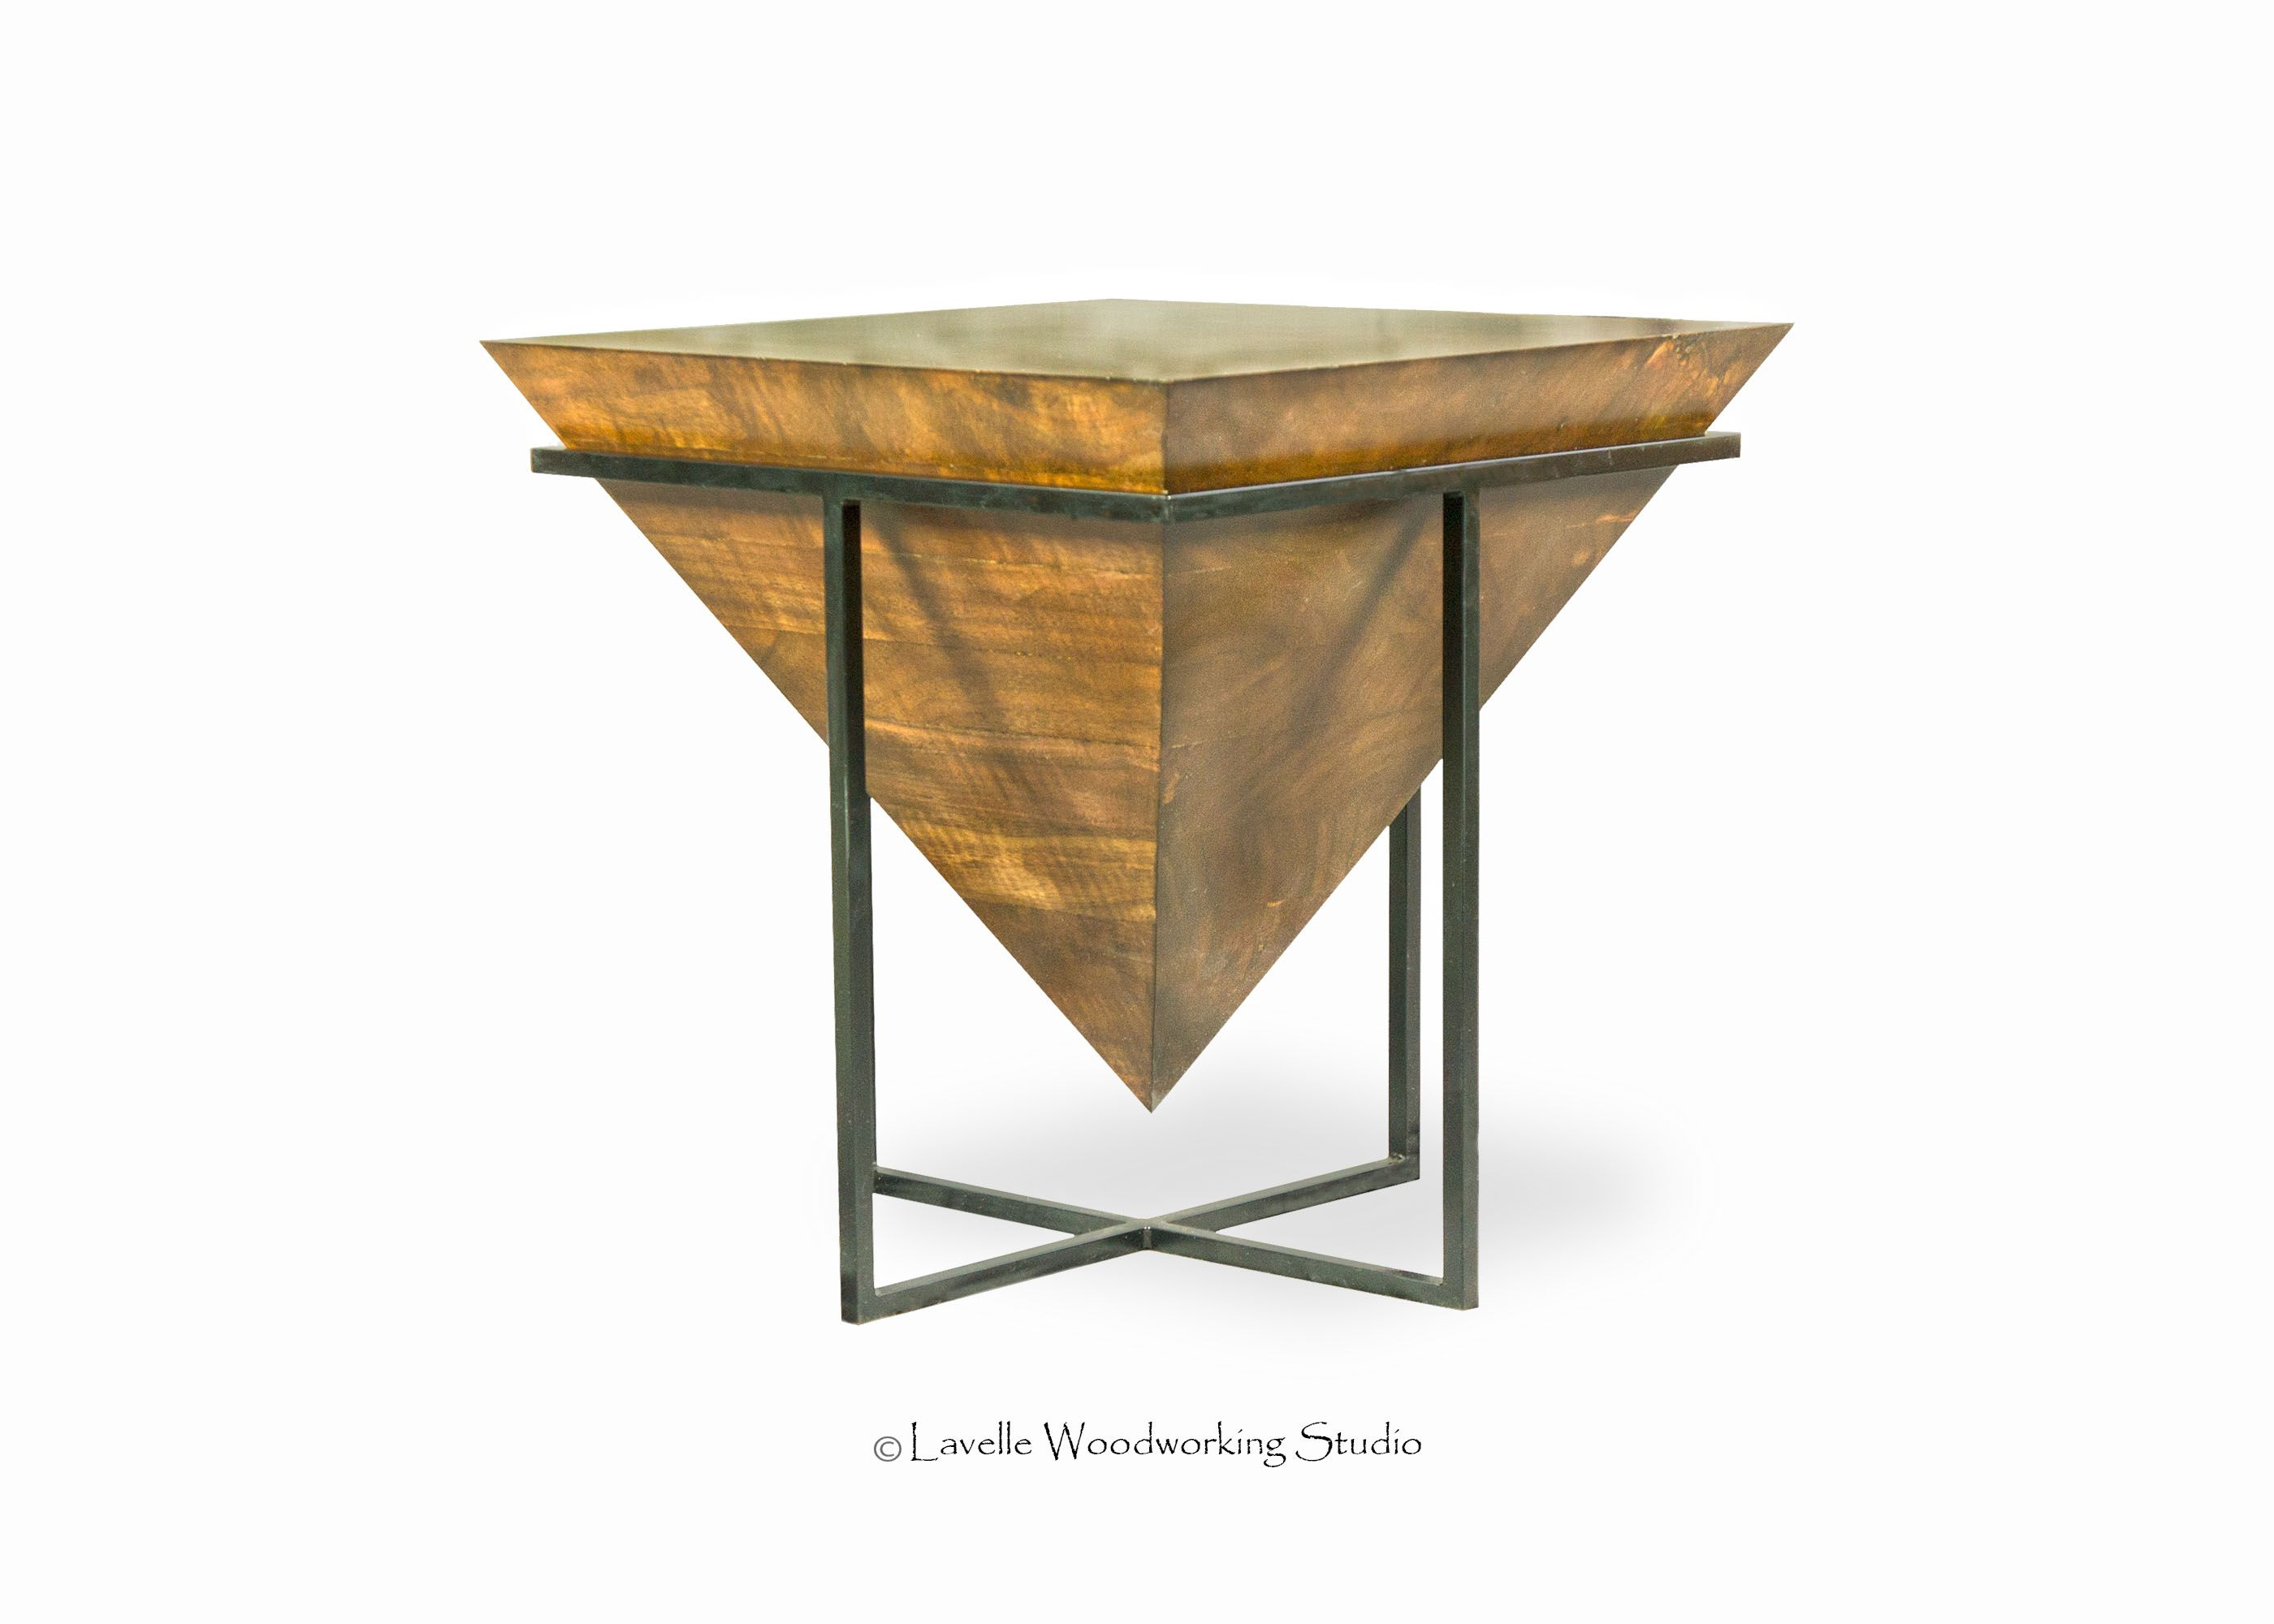 hand made mara table inverted wood pyramid with metal base nightstand custom big dresser mirror modern lamps for living room inch craigslist mattress corner dining set ikea